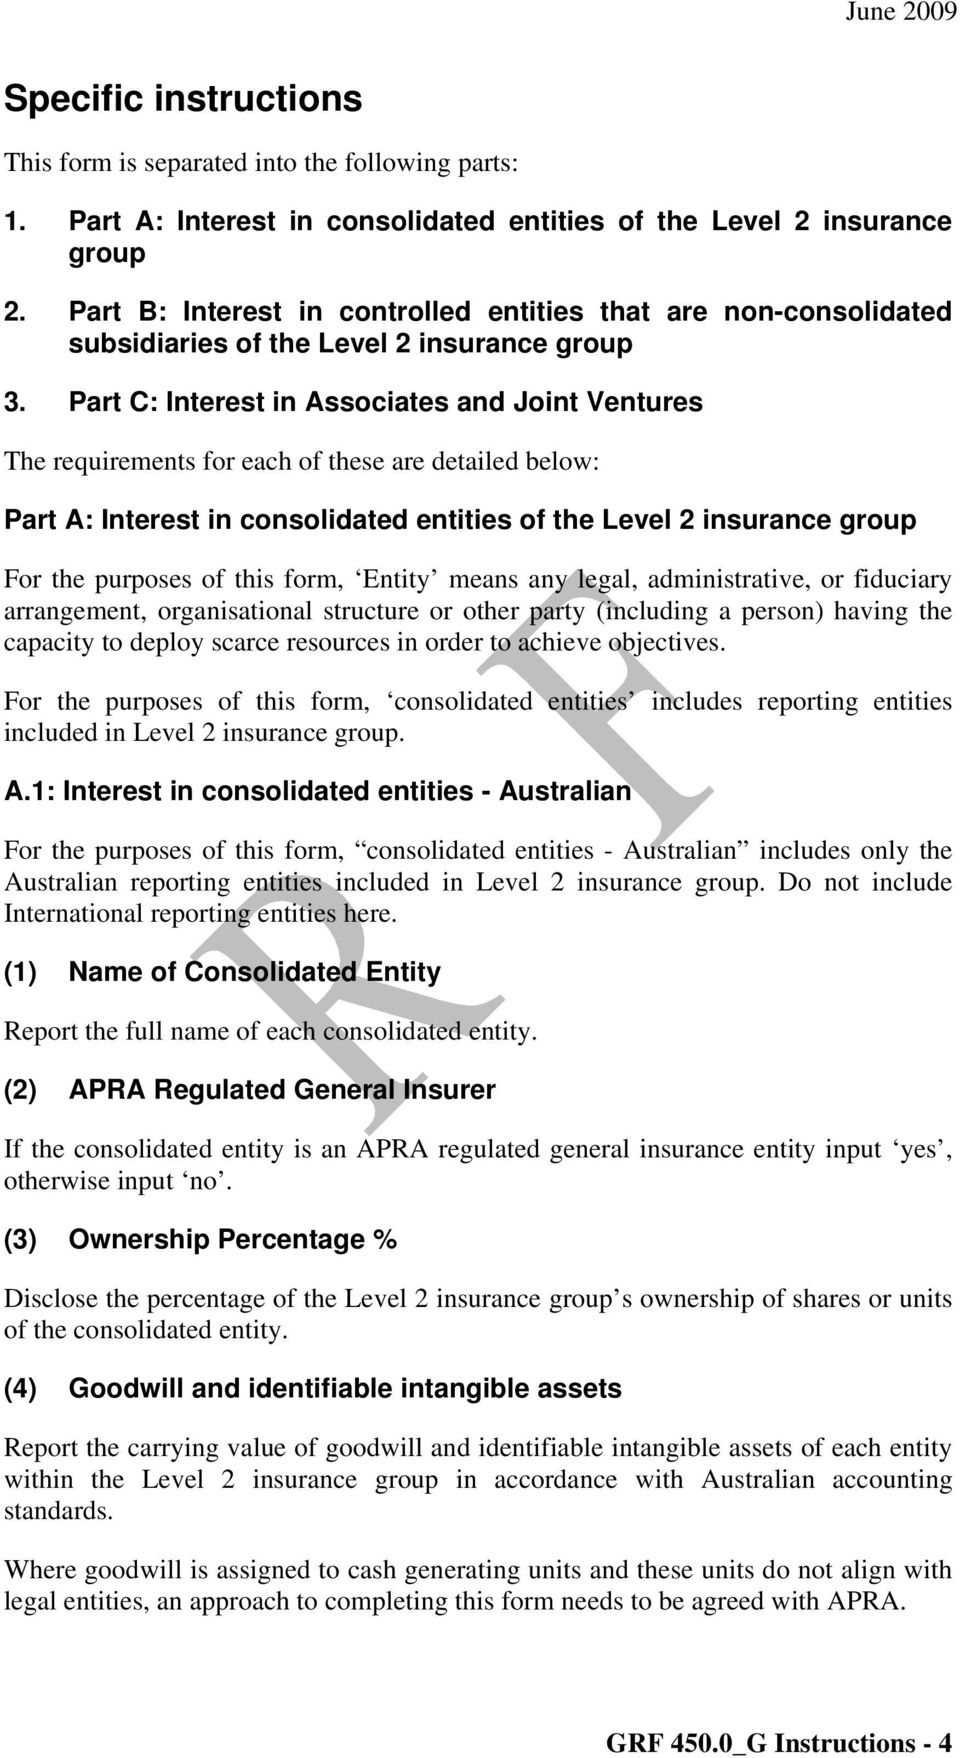 Part C: Interest in Associates and Joint Ventures The requirements for each of these are detailed below: Part A: Interest in consolidated entities of the Level 2 insurance group For the purposes of